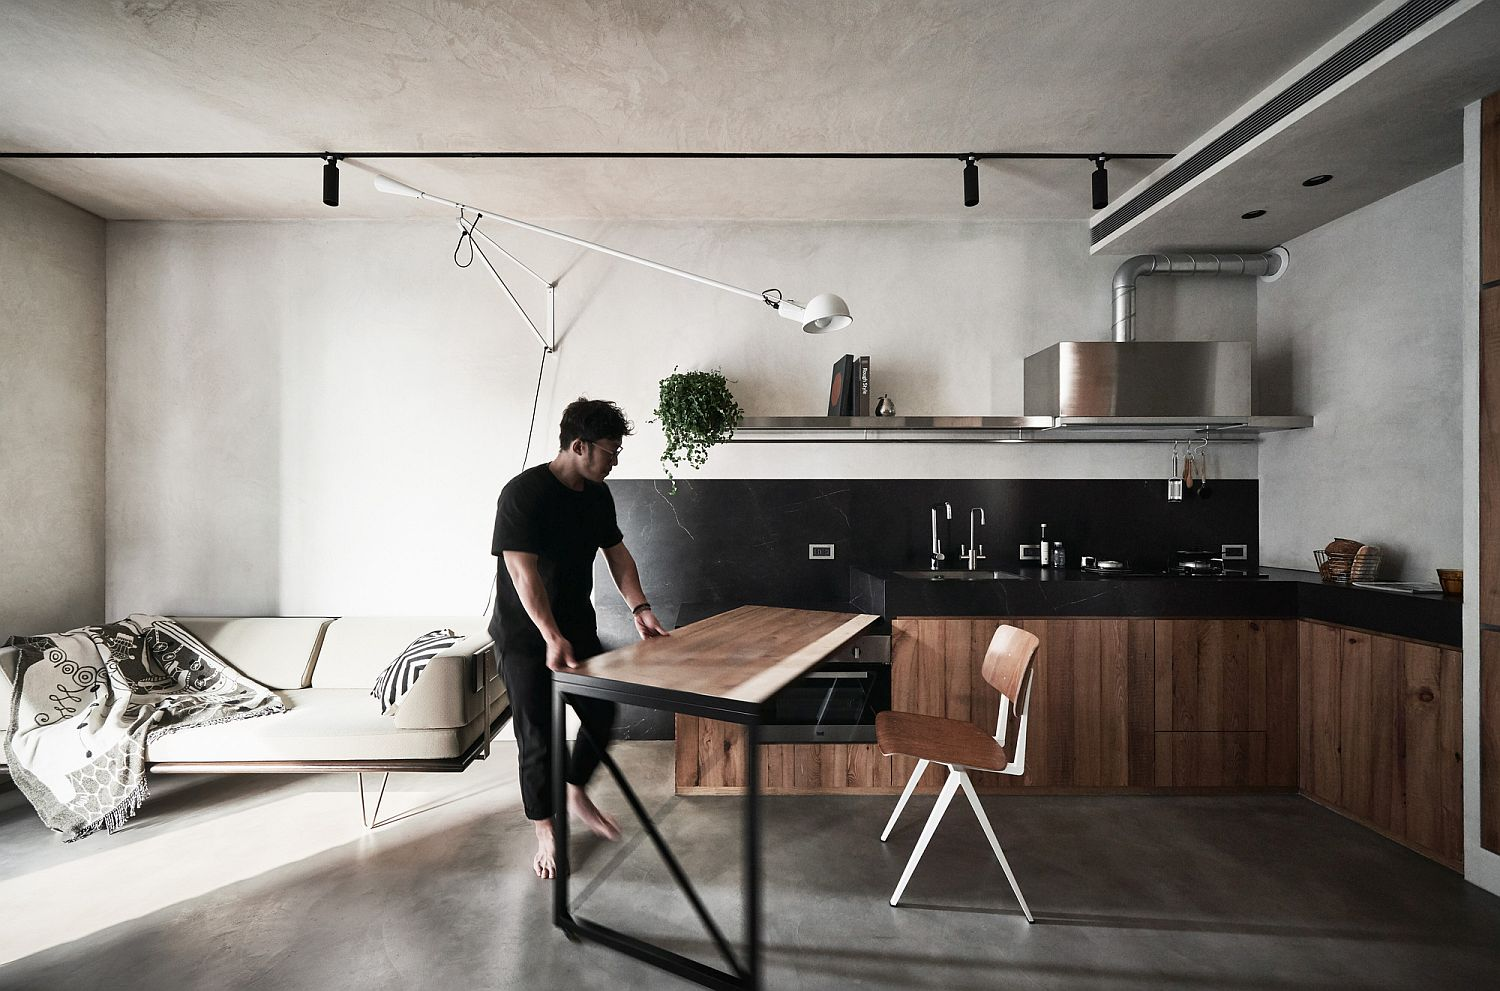 Combining the kitchen and dining area in a flexible fashion inside the small apartment